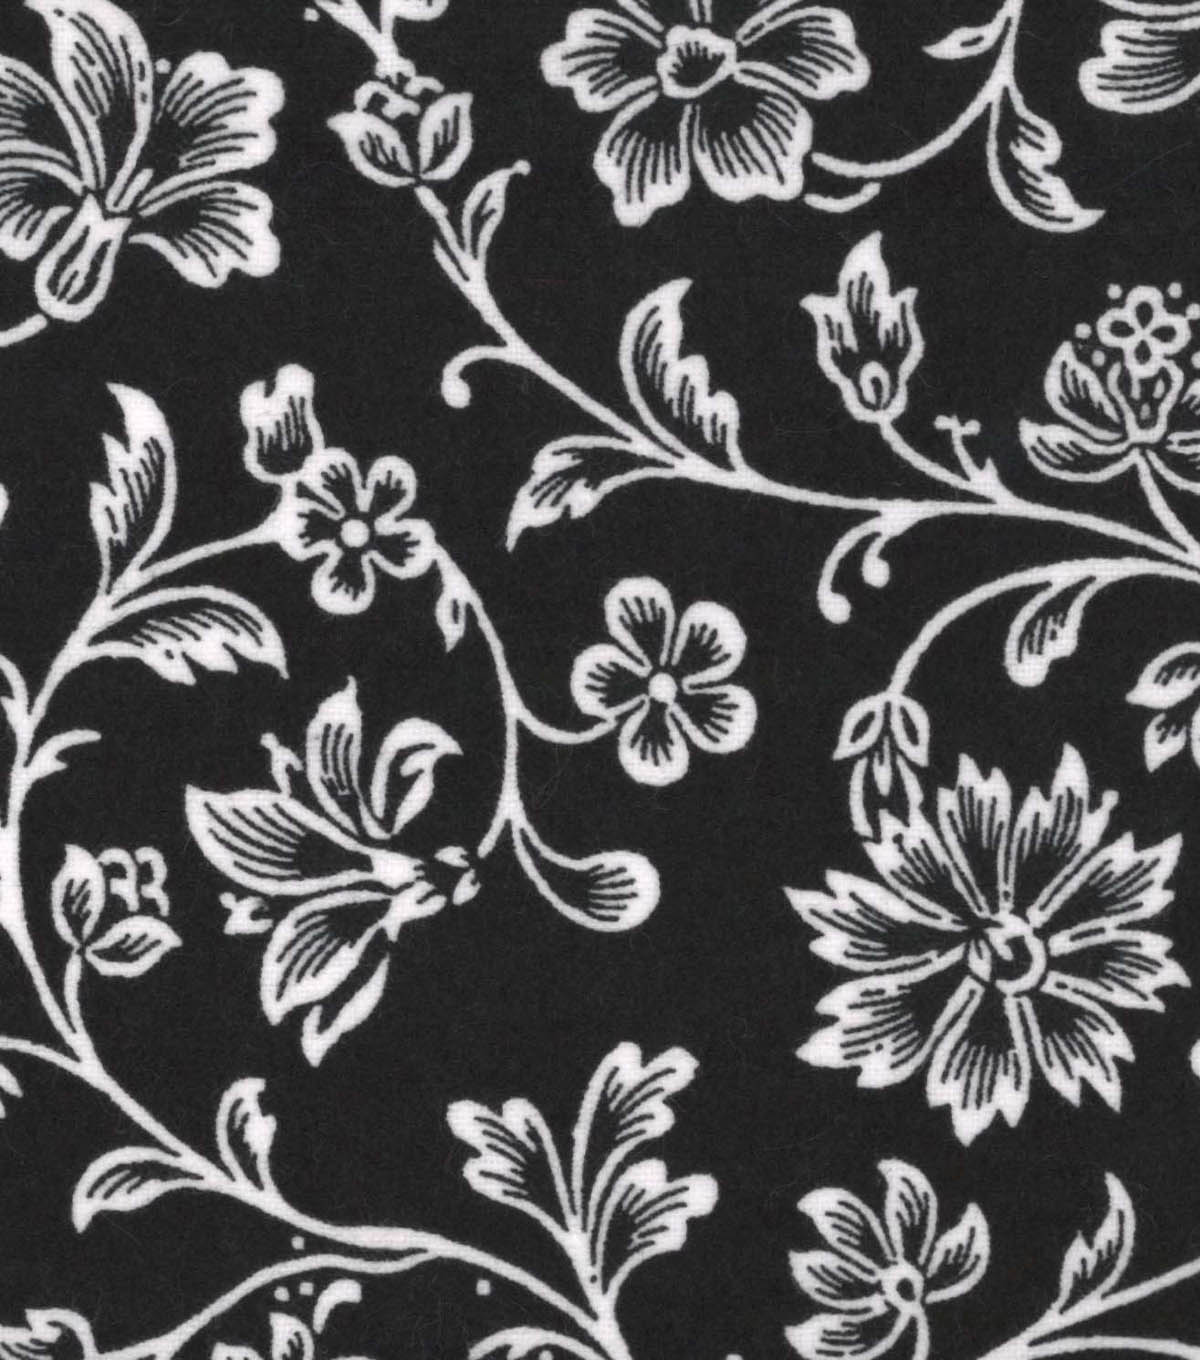 Snuggle Flannel Fabric -Black Floral Vines